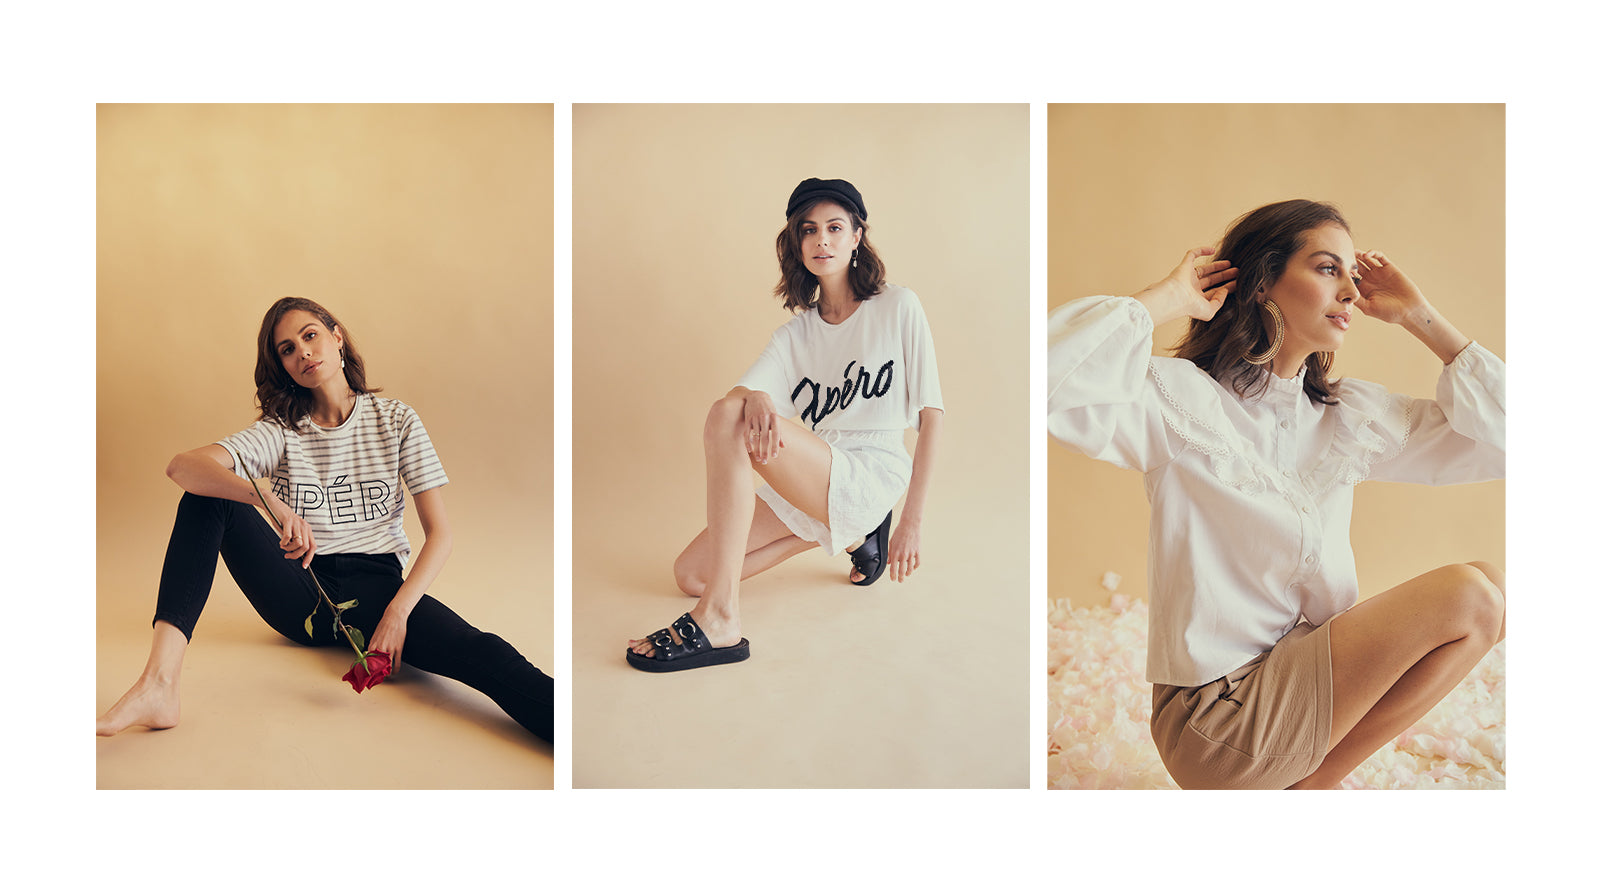 Opening Spring Collection wearing logo tees, skirts, shirts and shorts